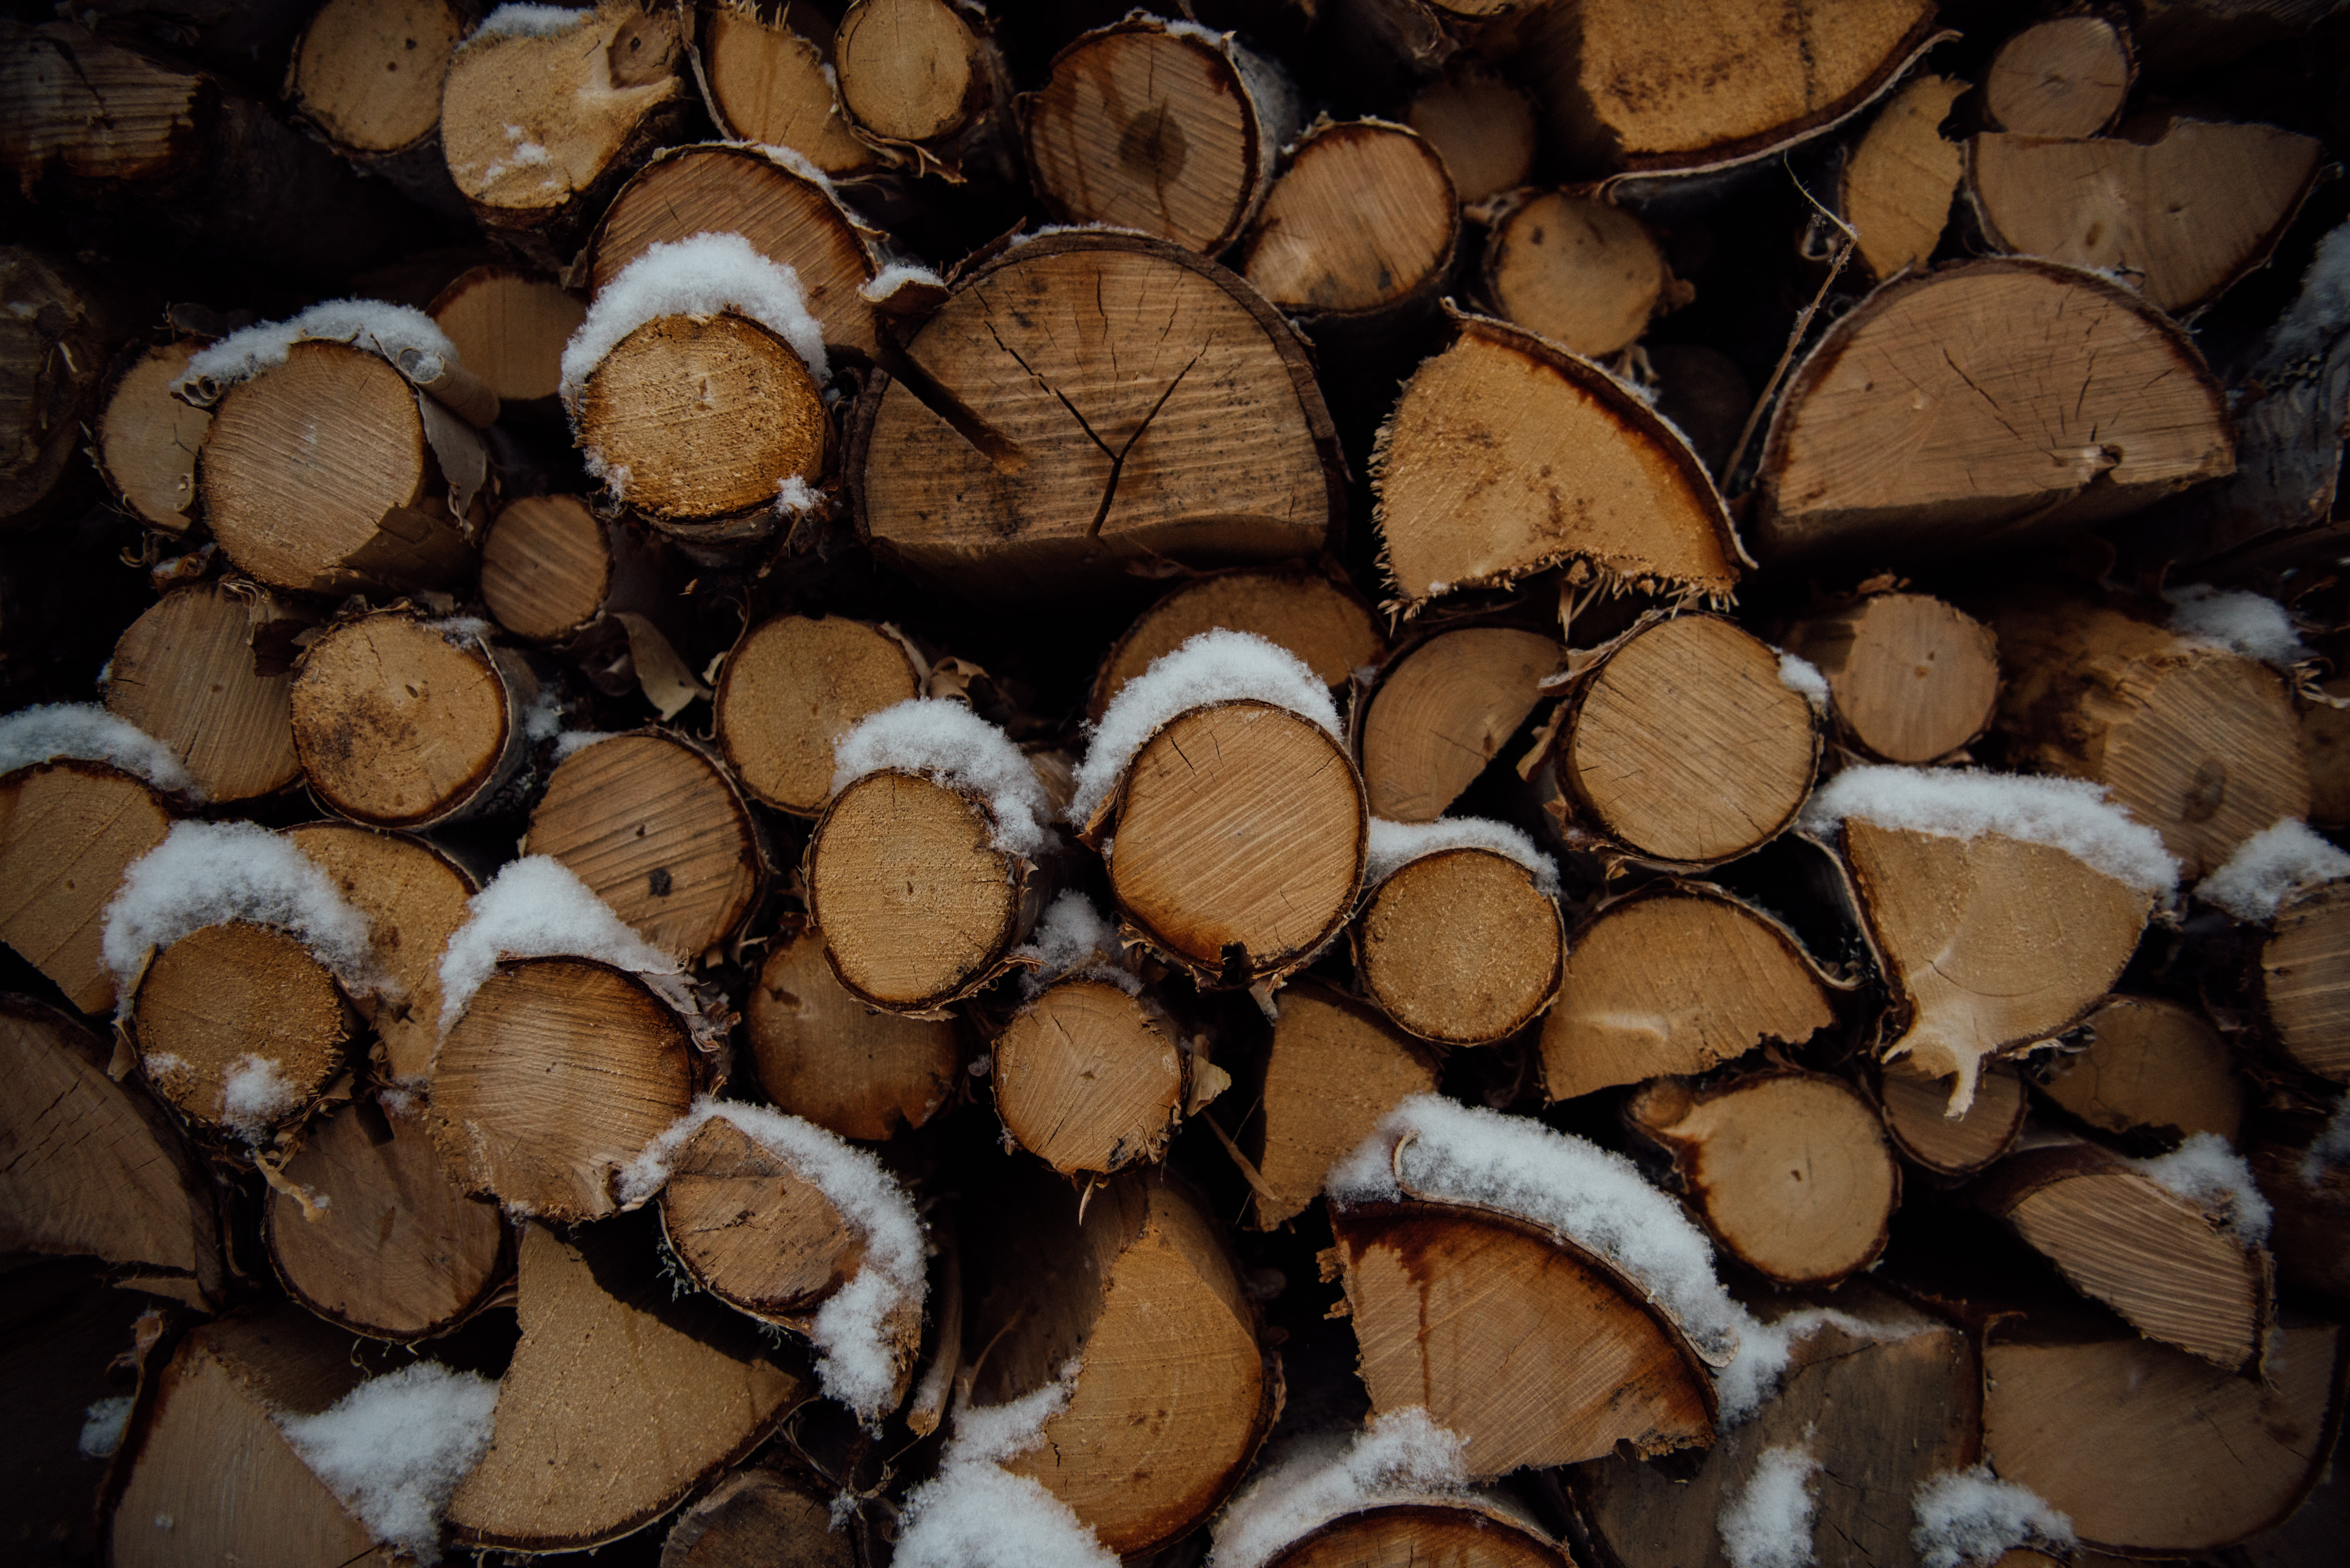 A pile of firewood covered in a thin layer of snow